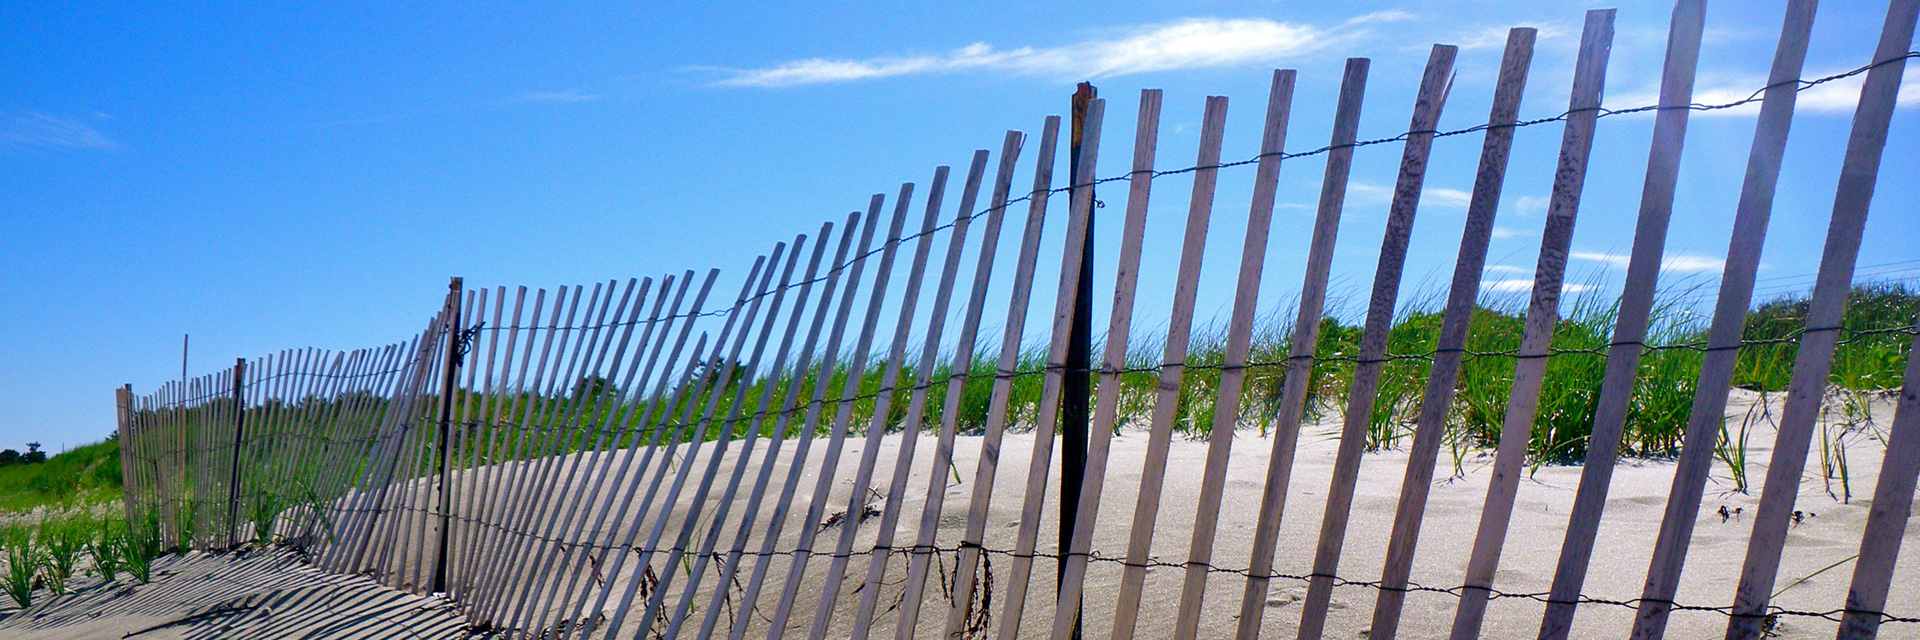 beach-fence-Spencer-Roy.jpg